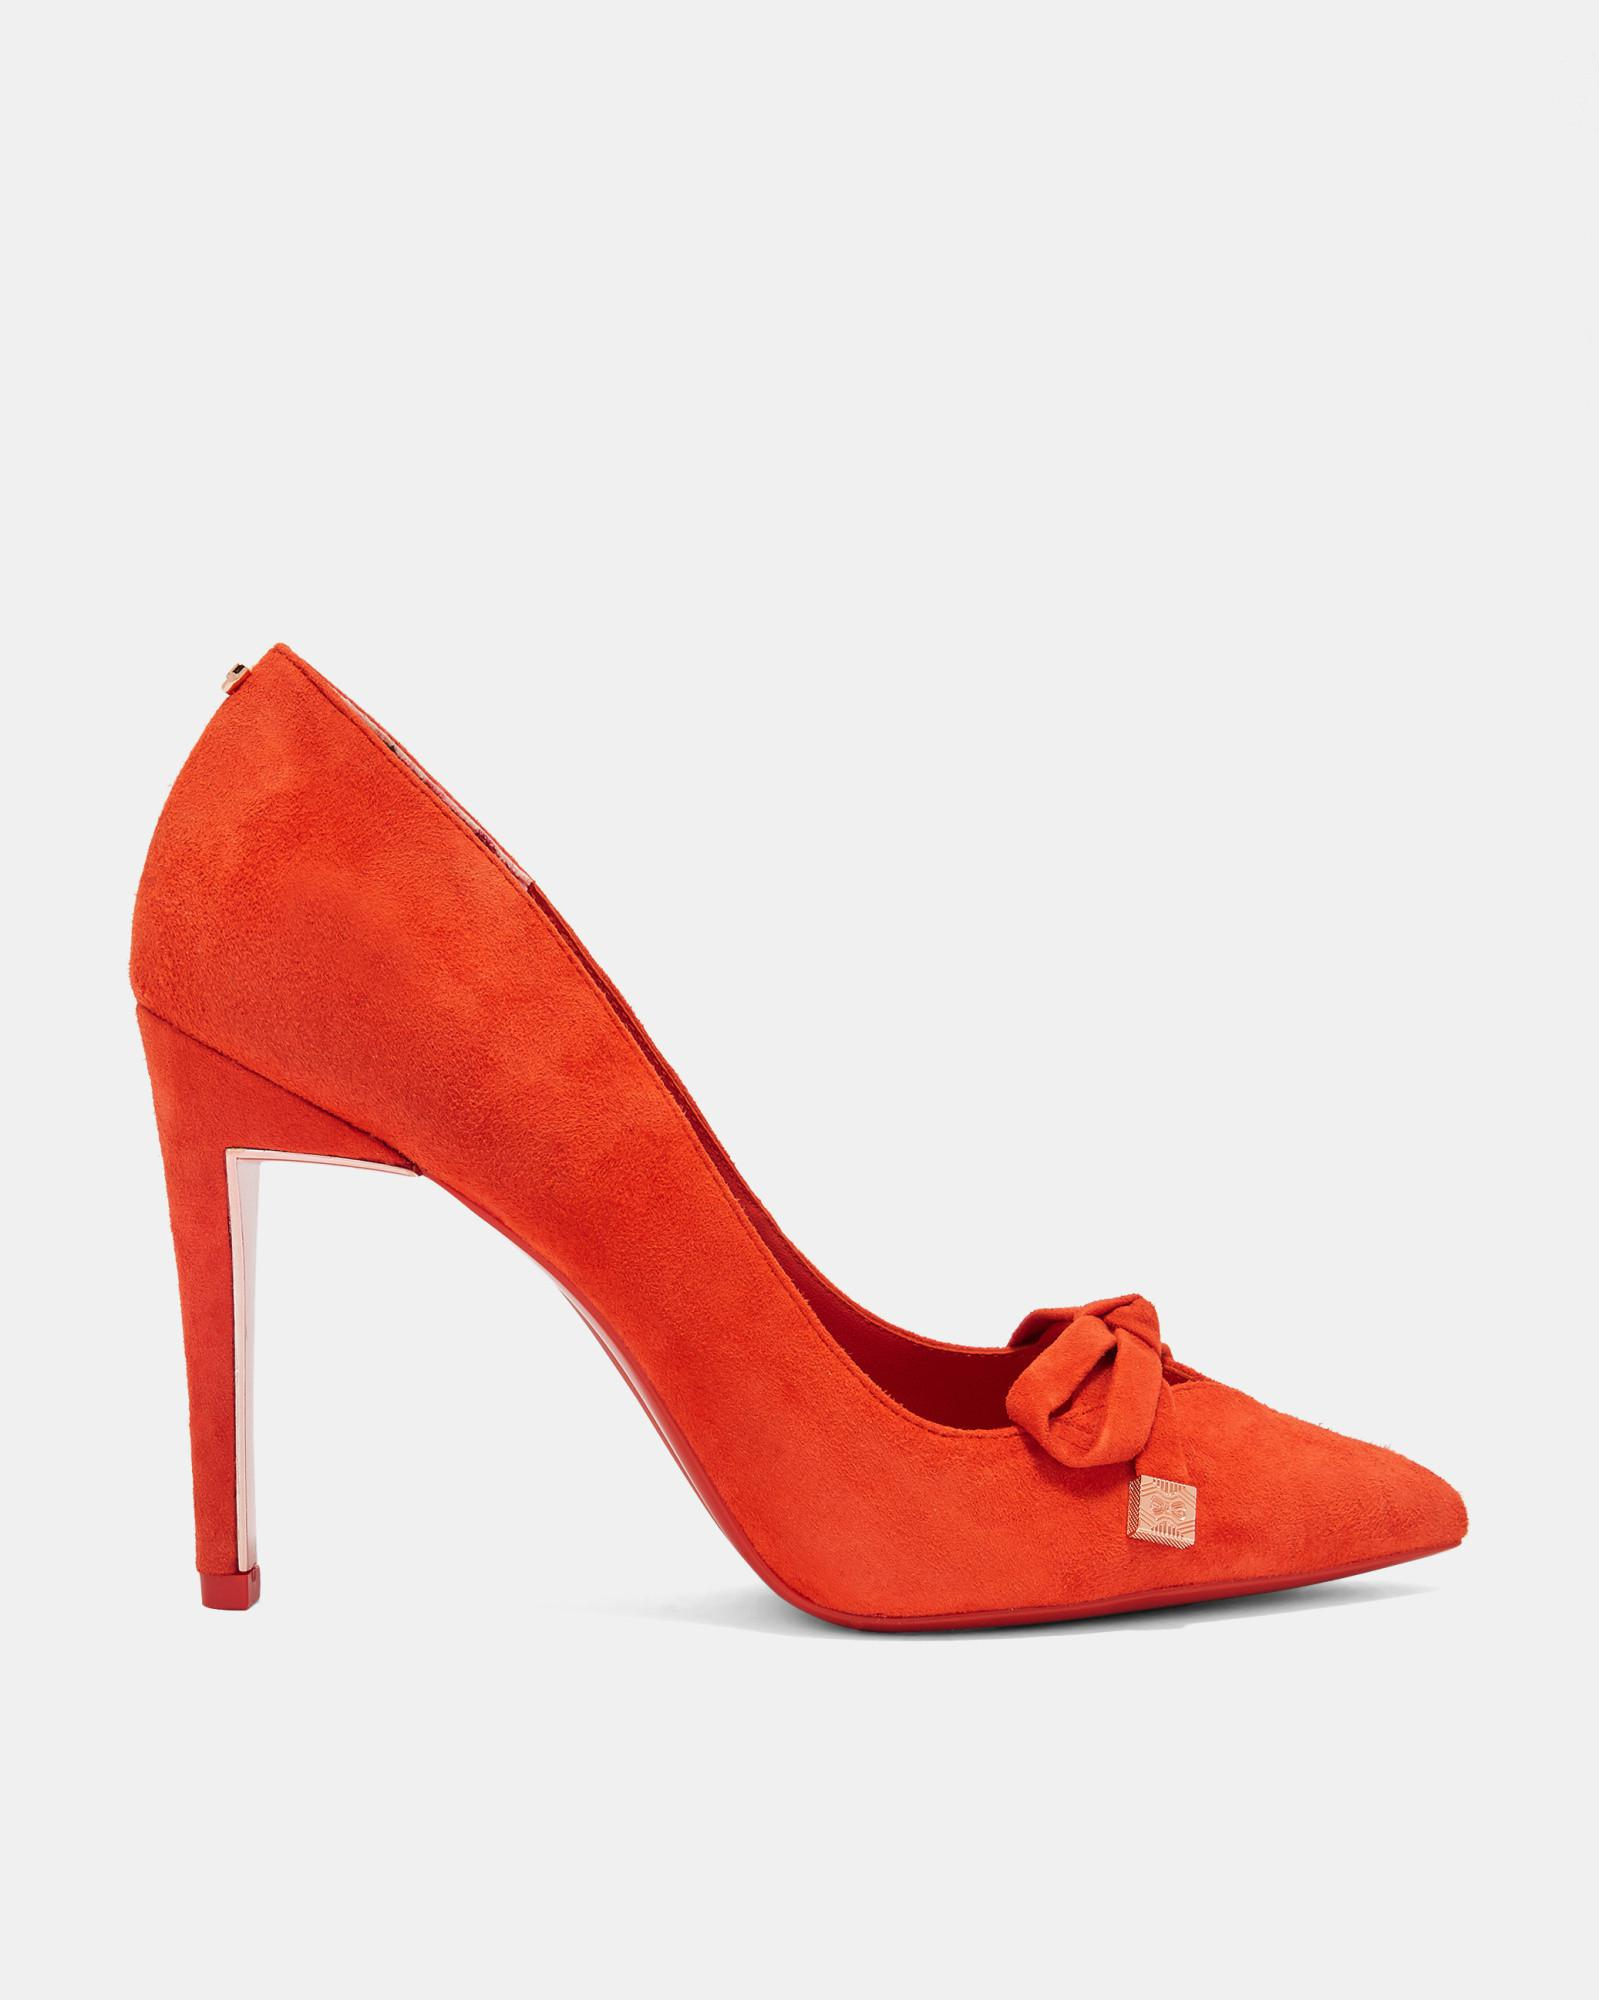 001f05d6027 Ted Baker Suede Bow Detail Courts in Red - Lyst